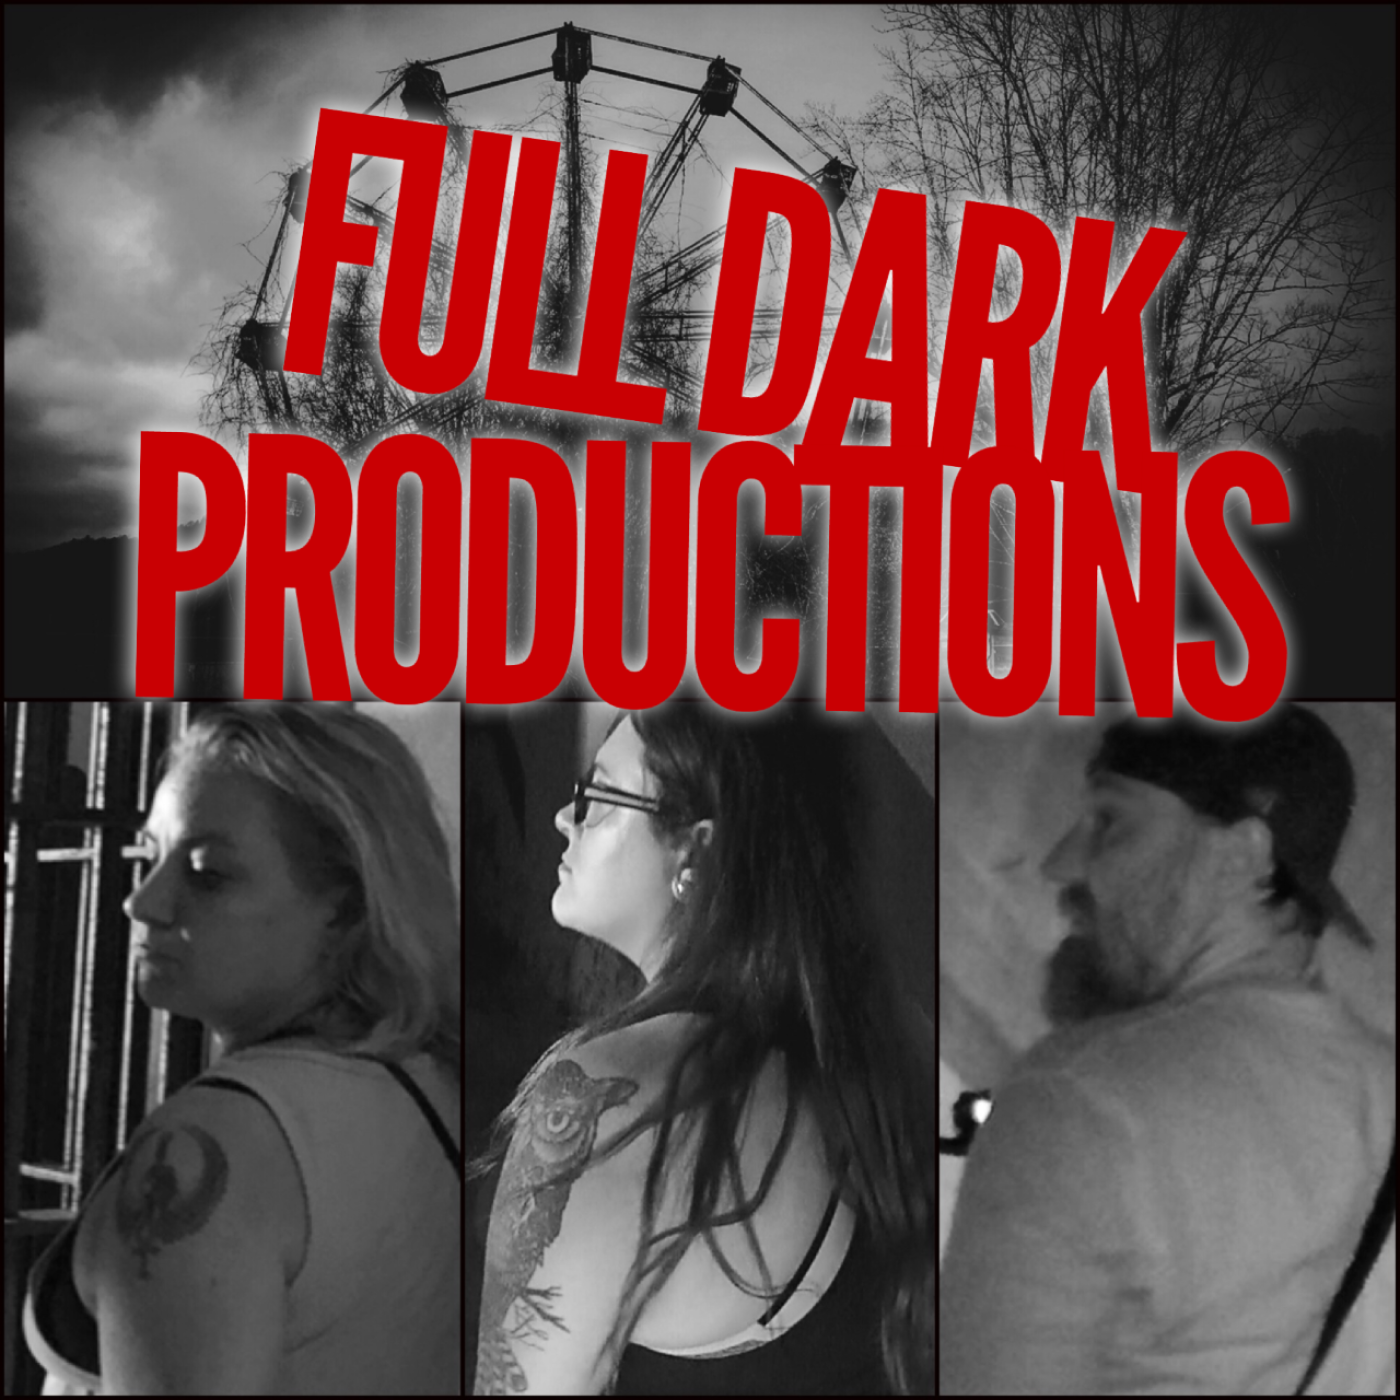 Artwork for (VIDEO) FULL DARK PRODUCTIONS: Haunted Salem ▪️ Proctor's Ledge Part 2 | Physical Interaction with the Other Side?